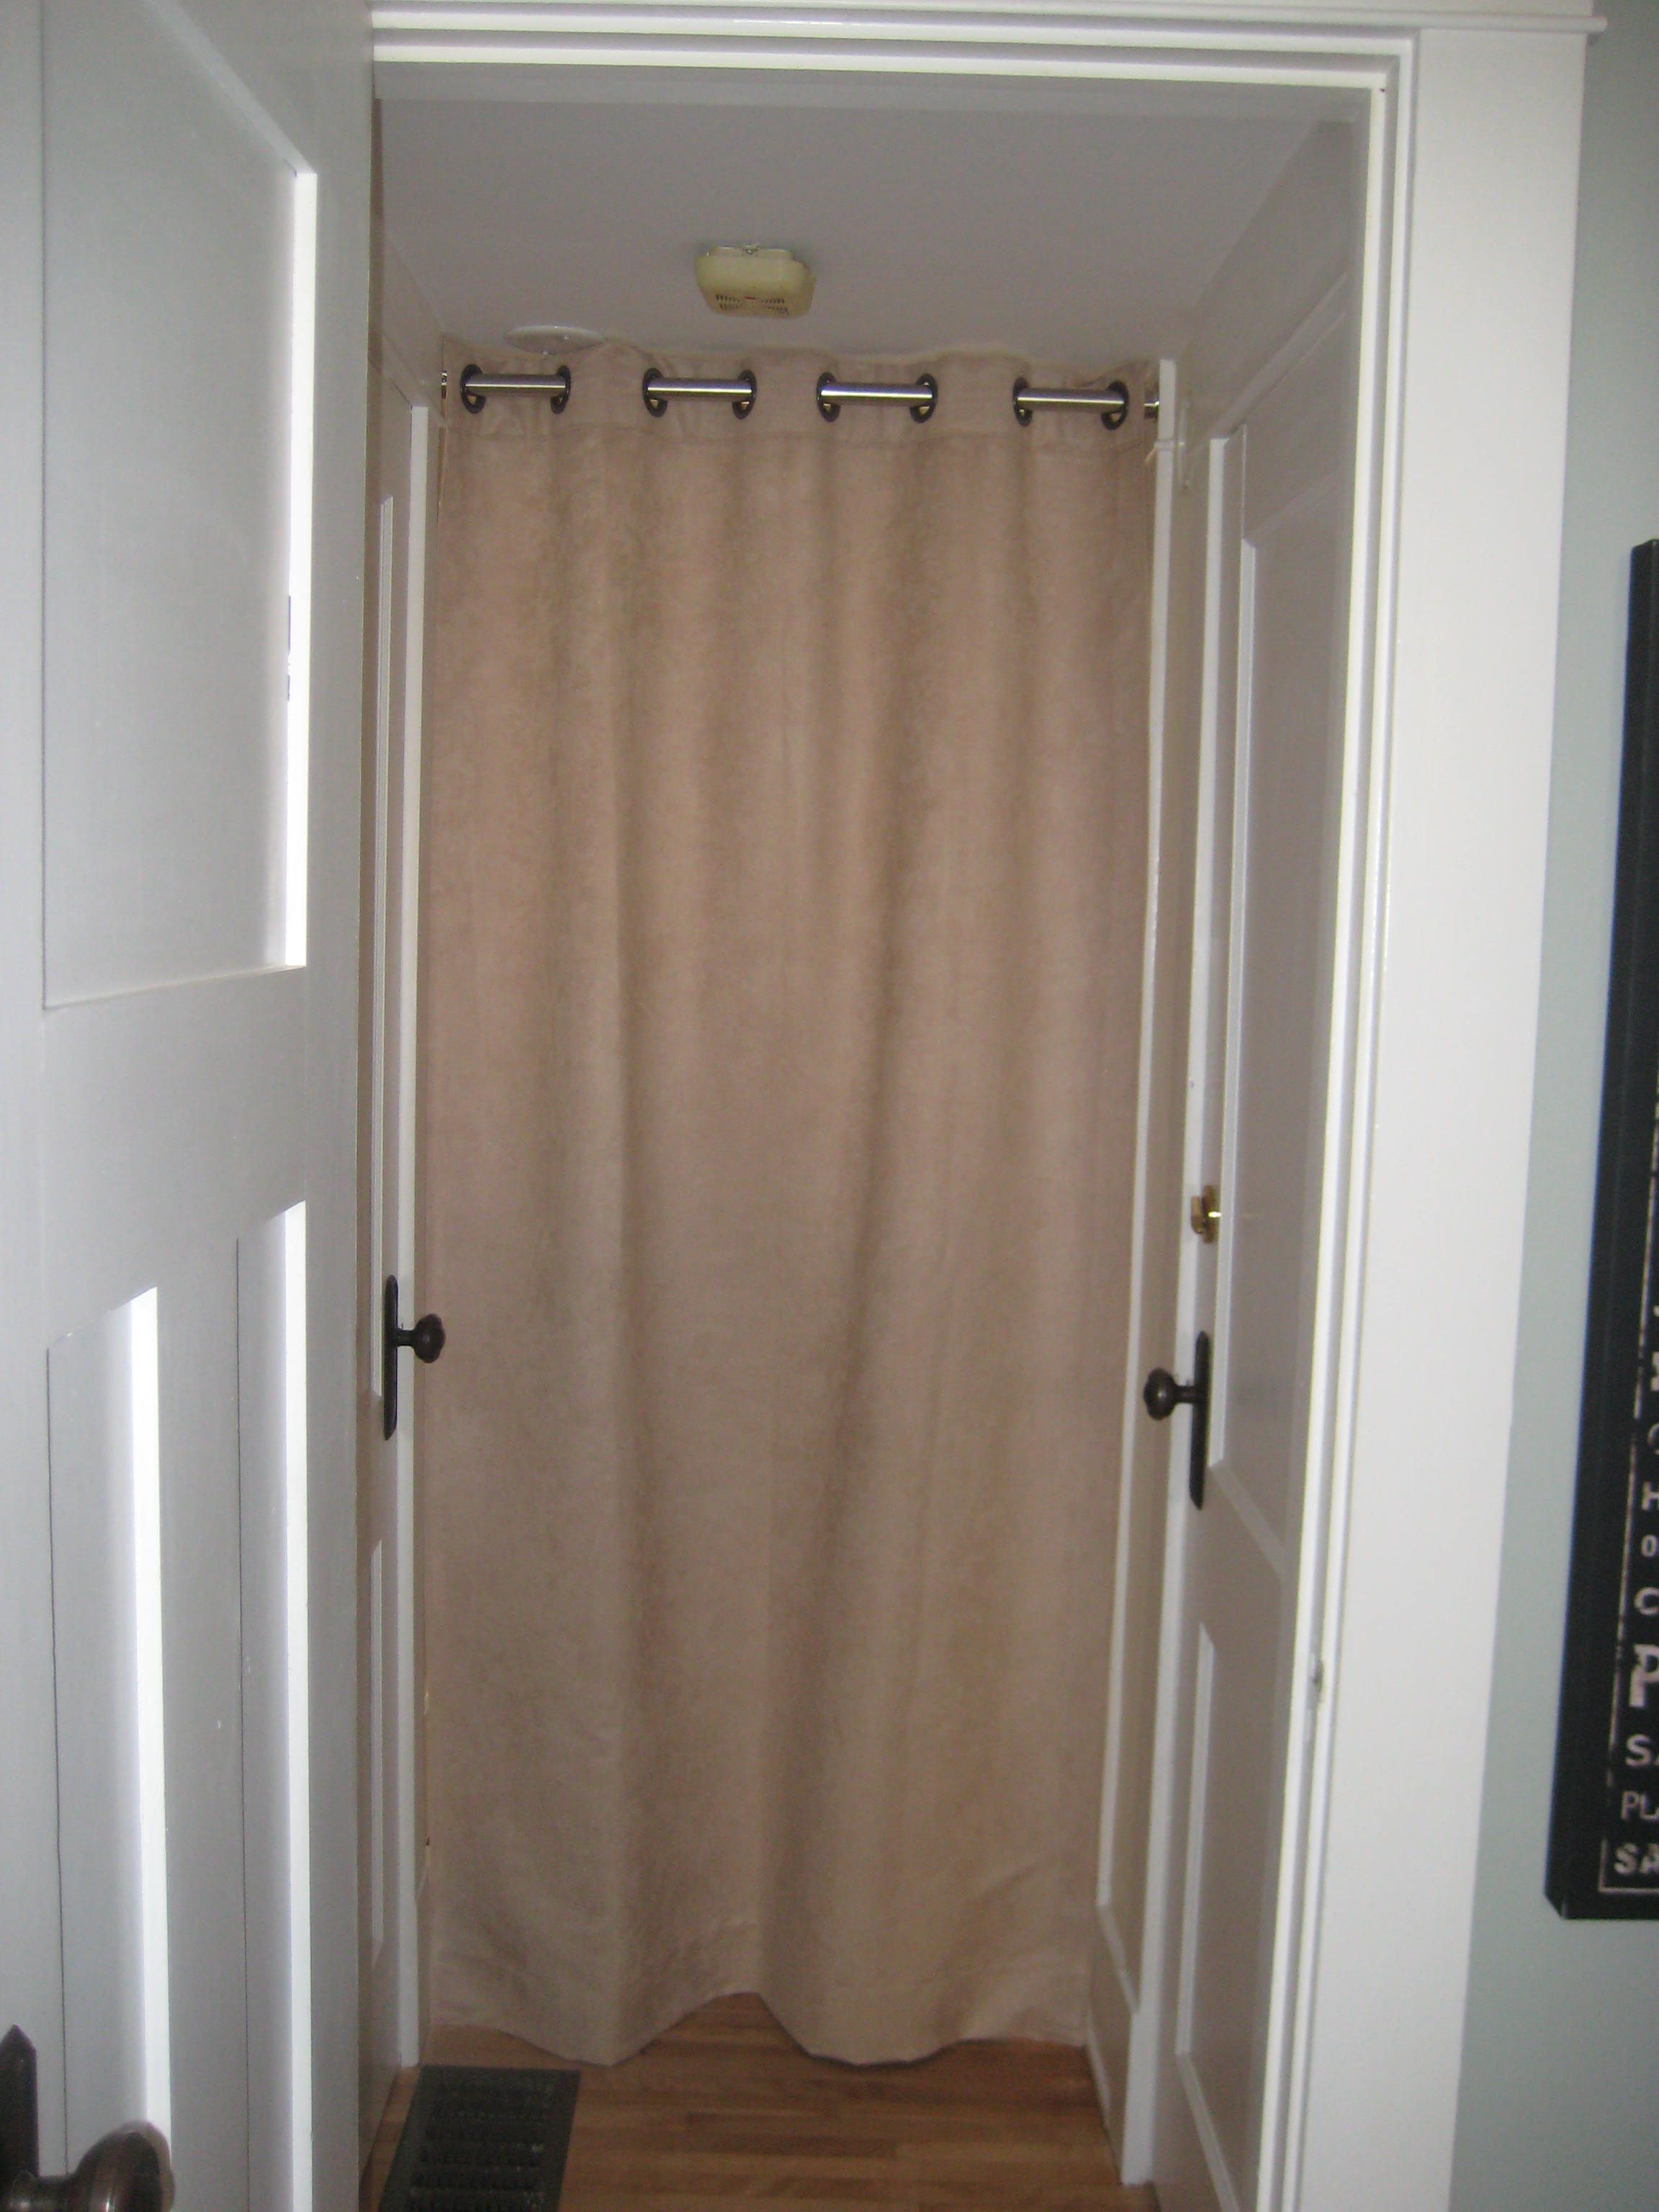 STC 20 Quiet Curtains Reduce Noise By Up To 20 Decibels! STC 20 Quiet  Curtains Use A Powerful Sound Blocking ...